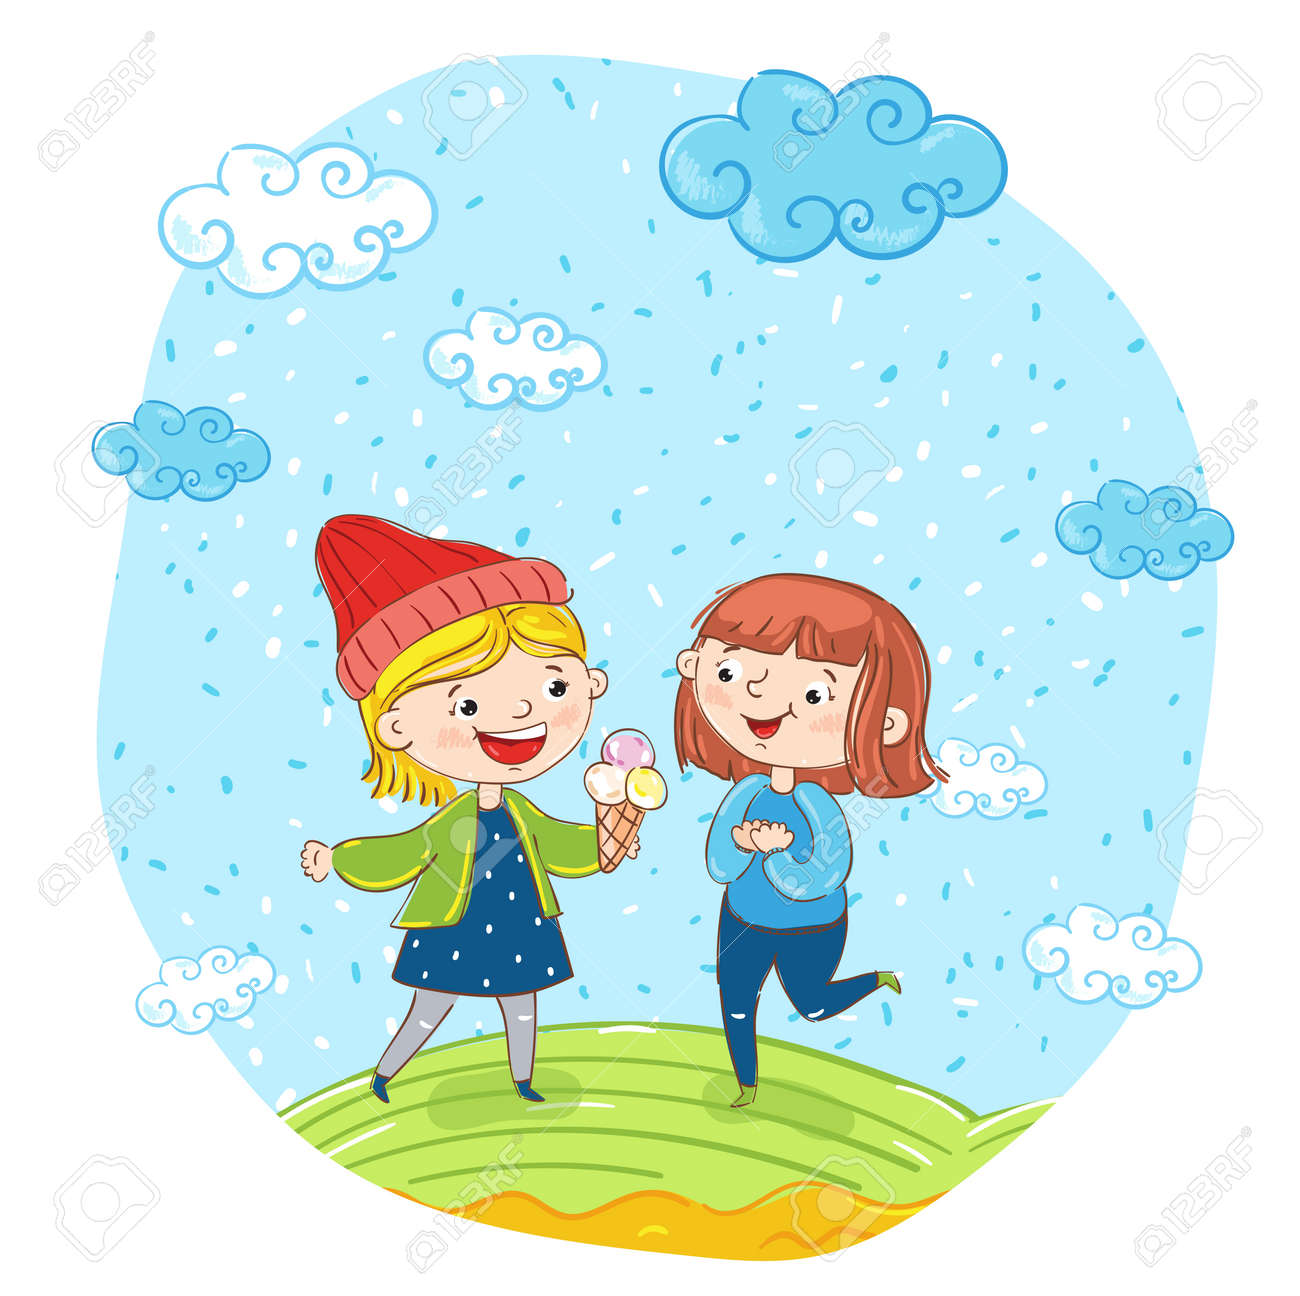 Happy Young Girl Cartoon Characters Illustration Two Girlfriends Having Fun Smiling Chatting And